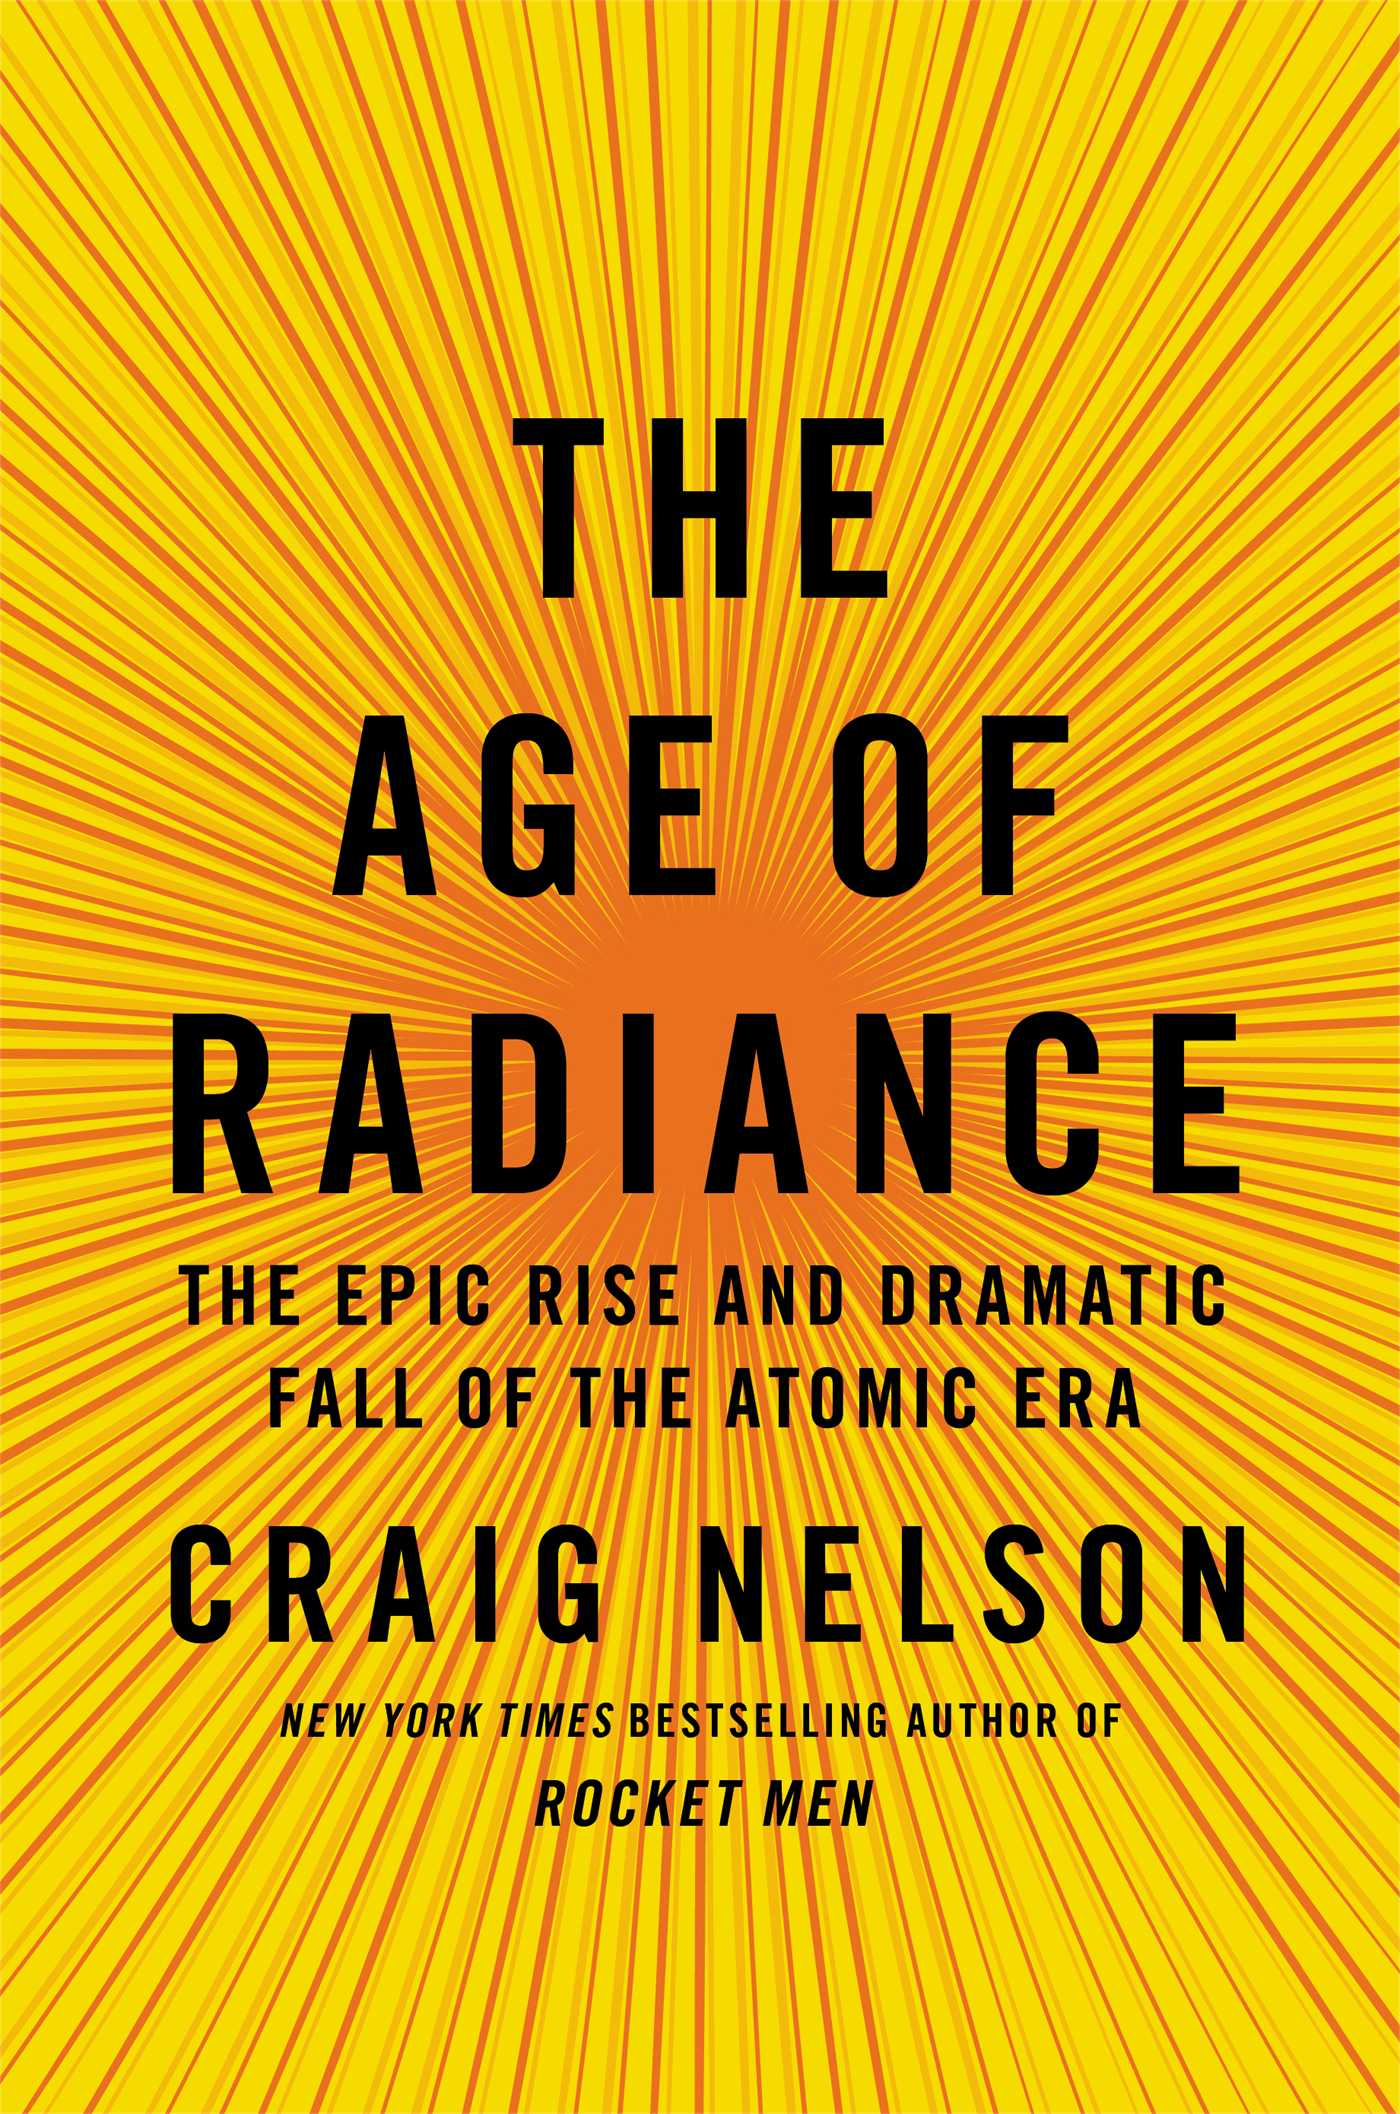 Age-of-radiance-9781451660432_hr